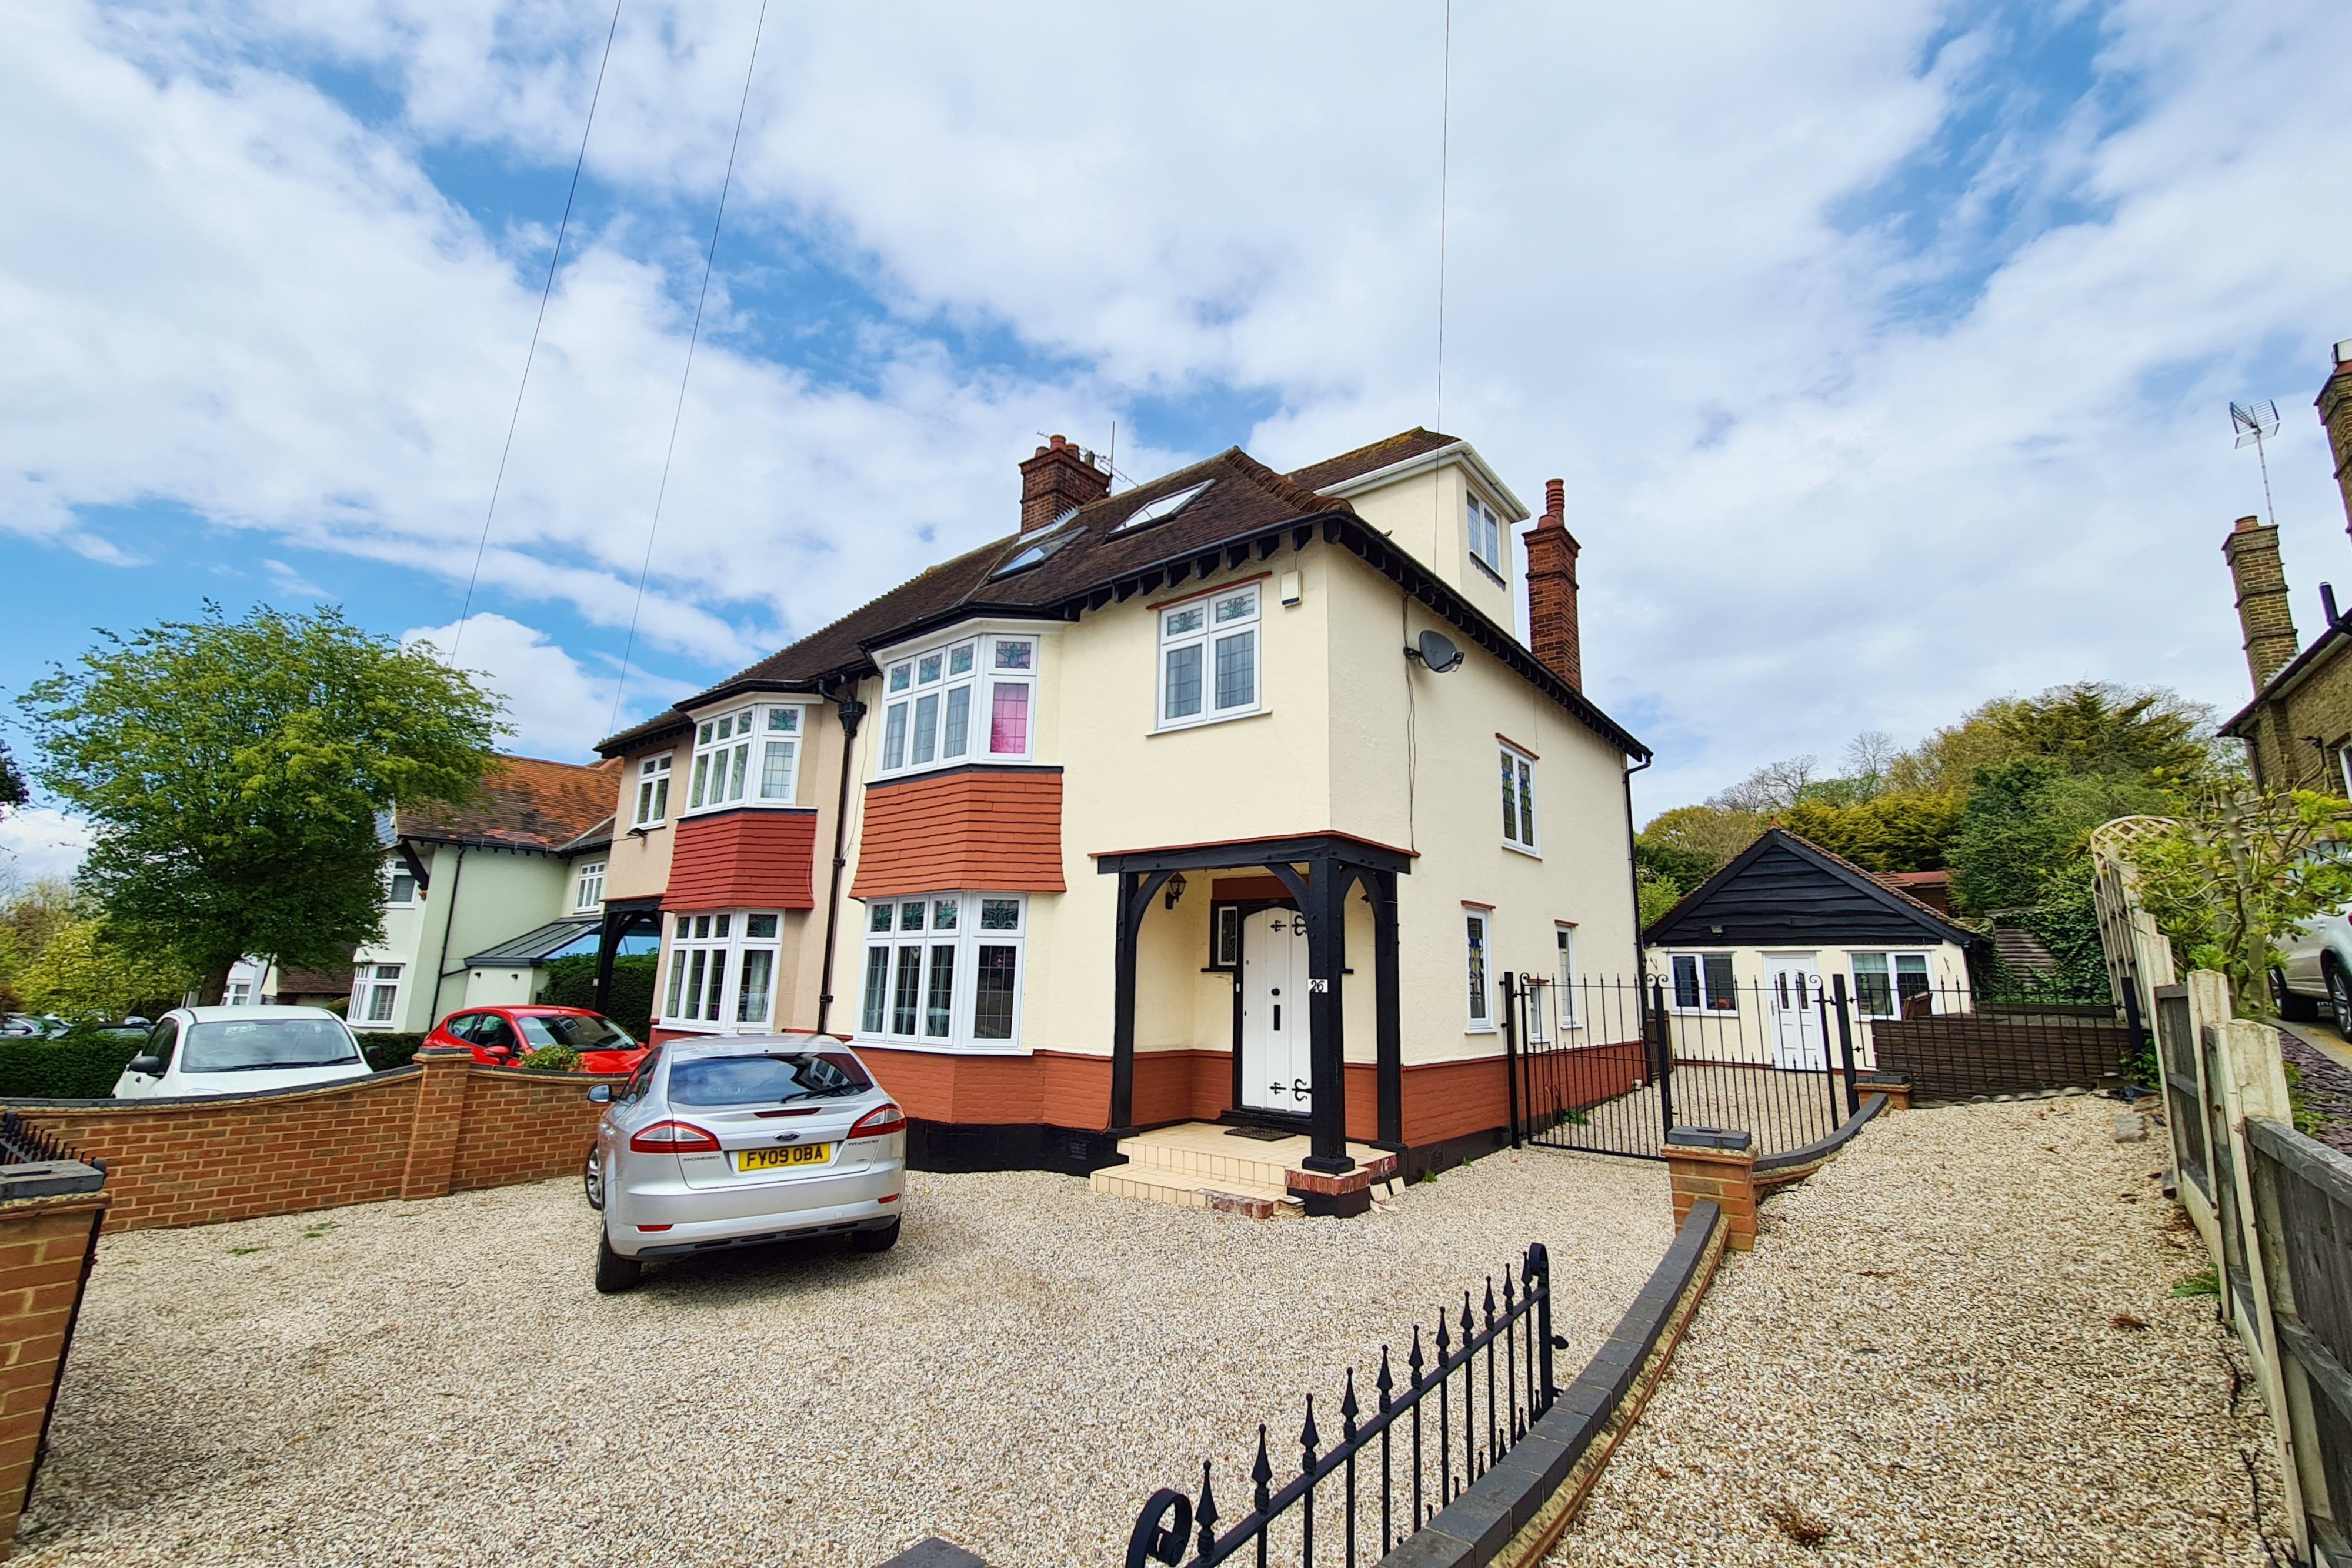 4 bed house for sale in Crown Hill, Rayleigh, SS6